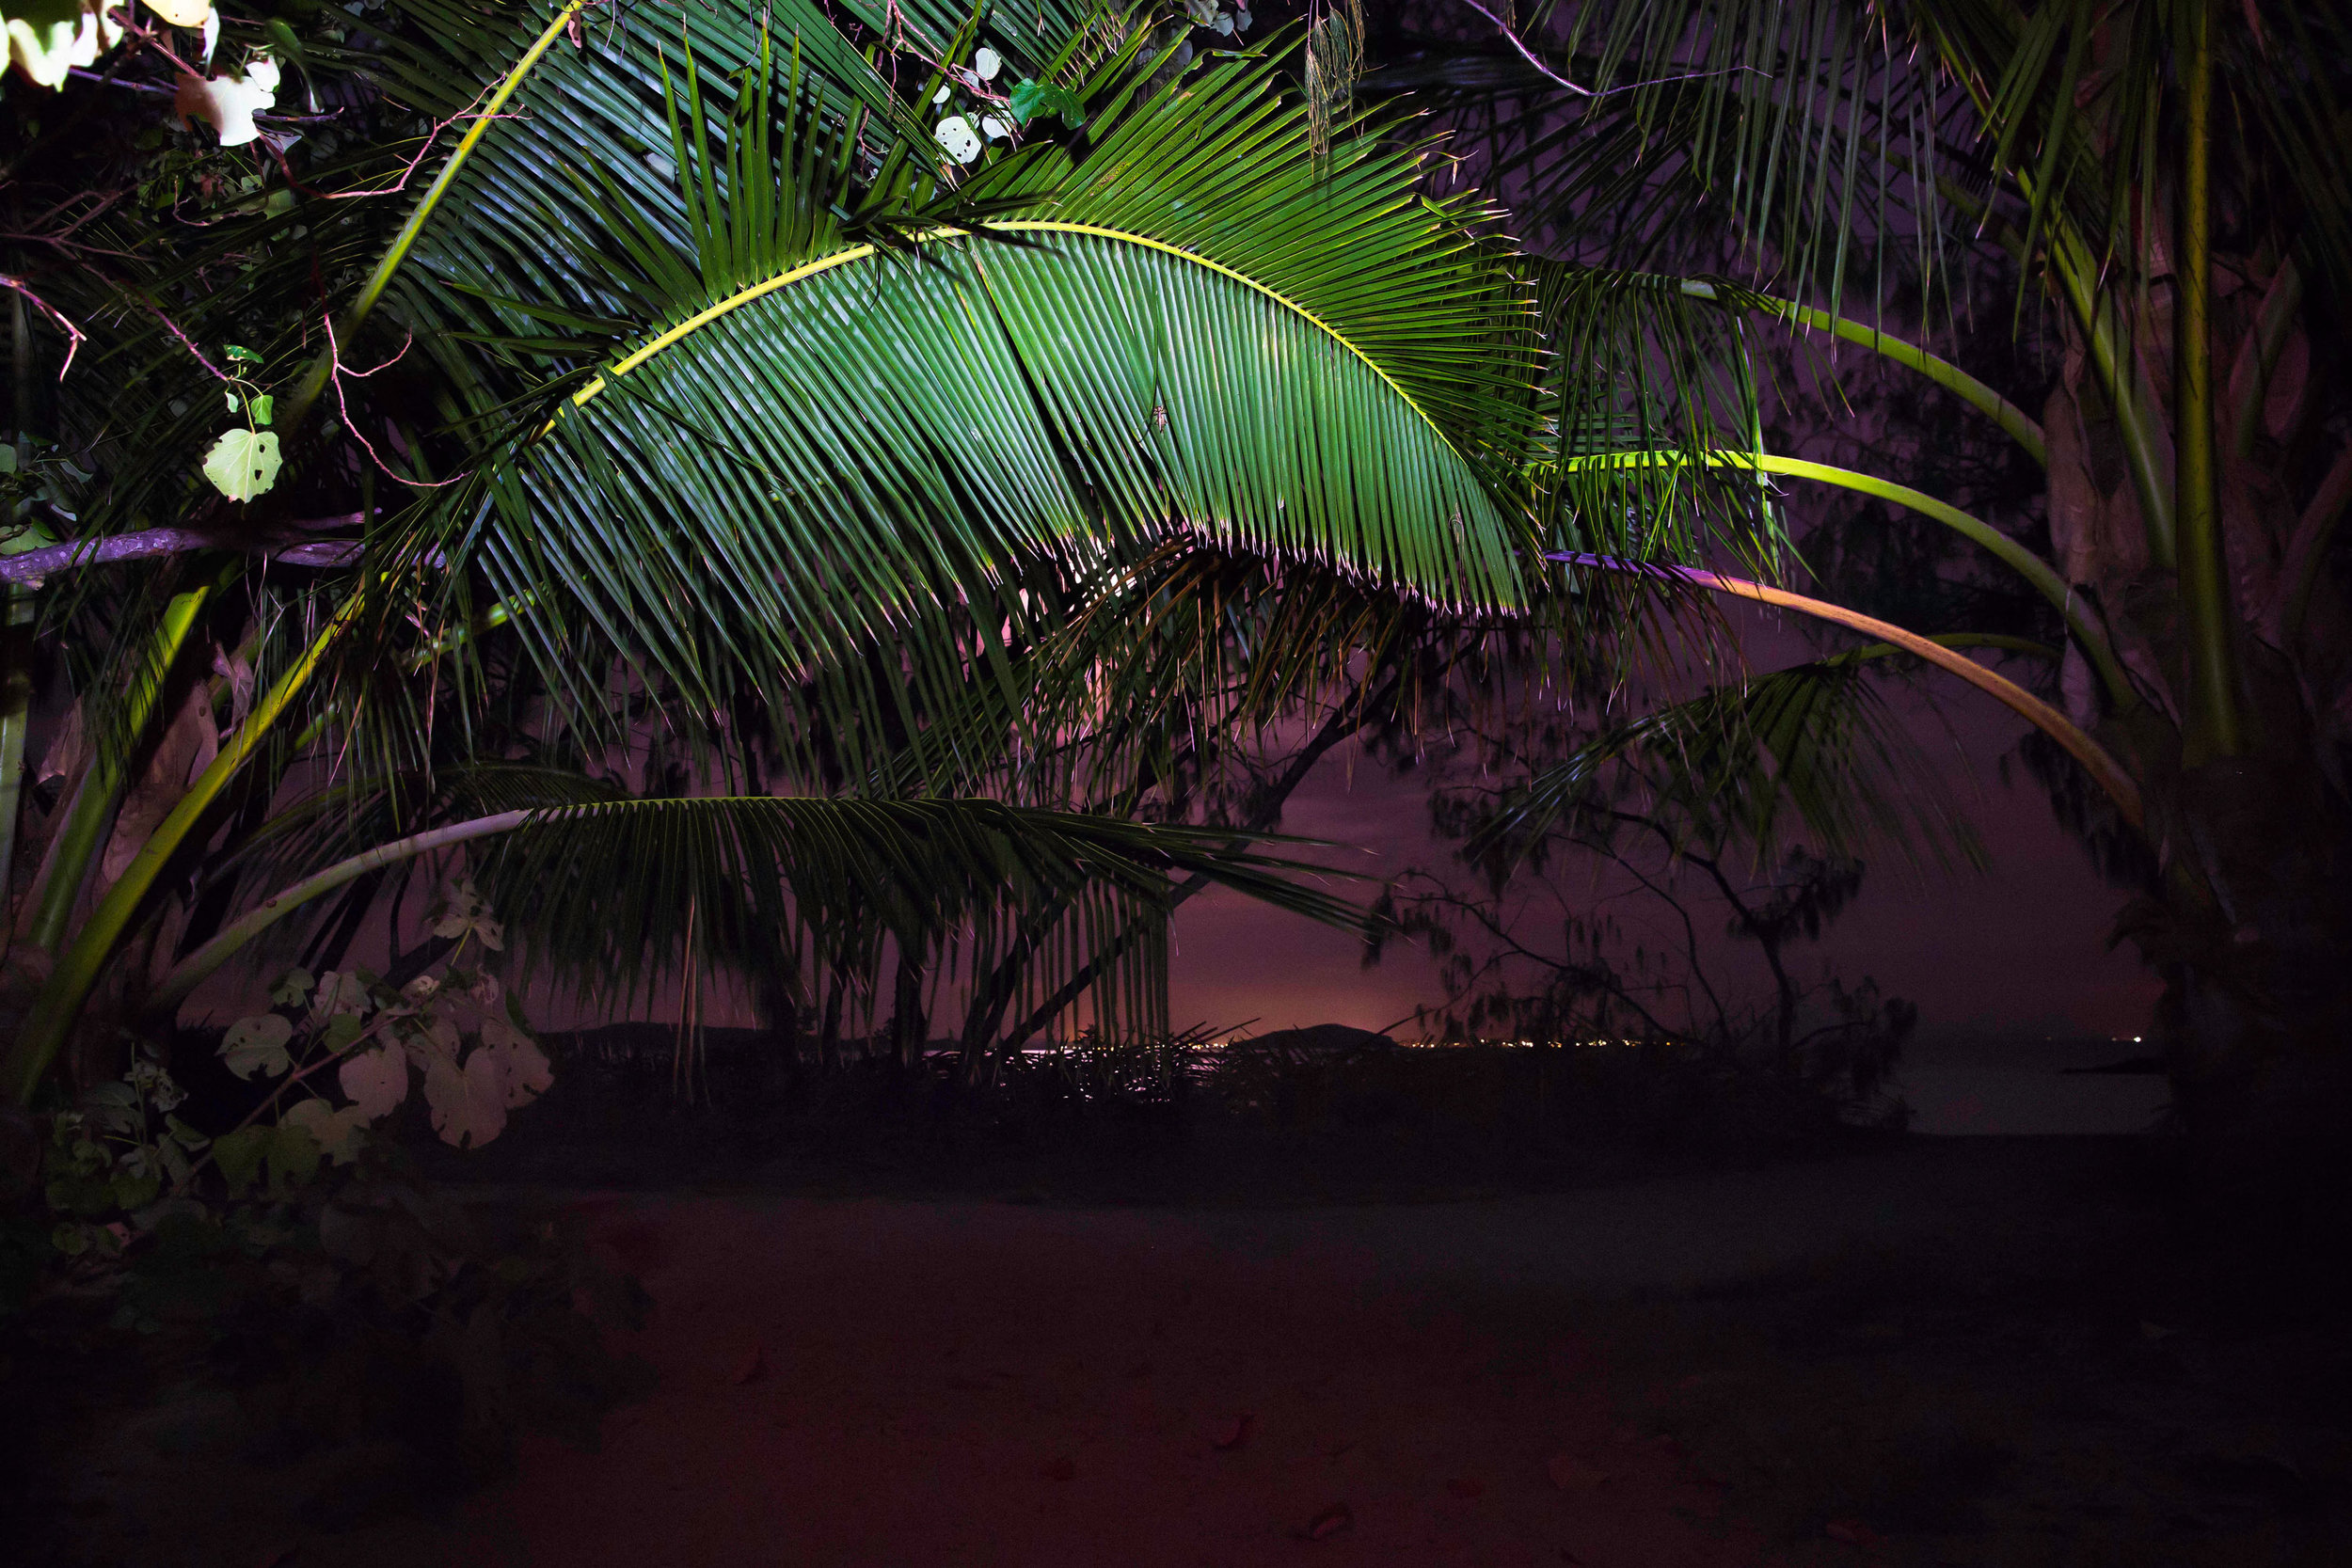 gki-palm-trees-night-2.jpg